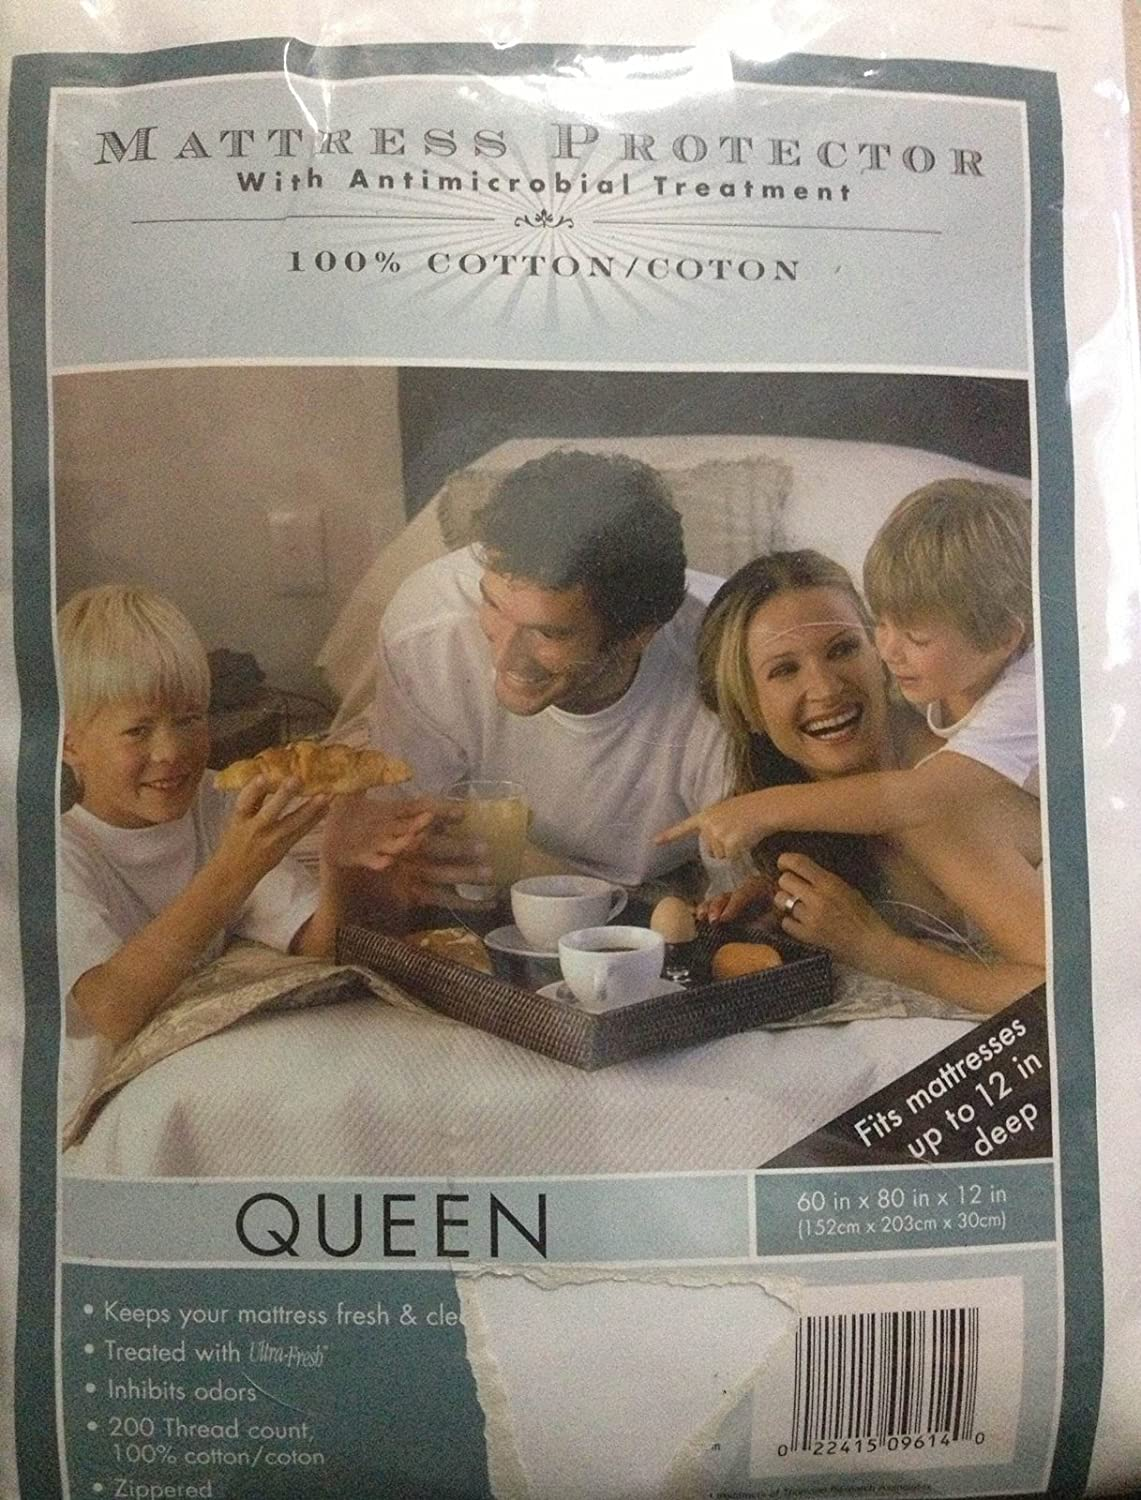 Mattress Protector with Antimicrobial Treatment Queen